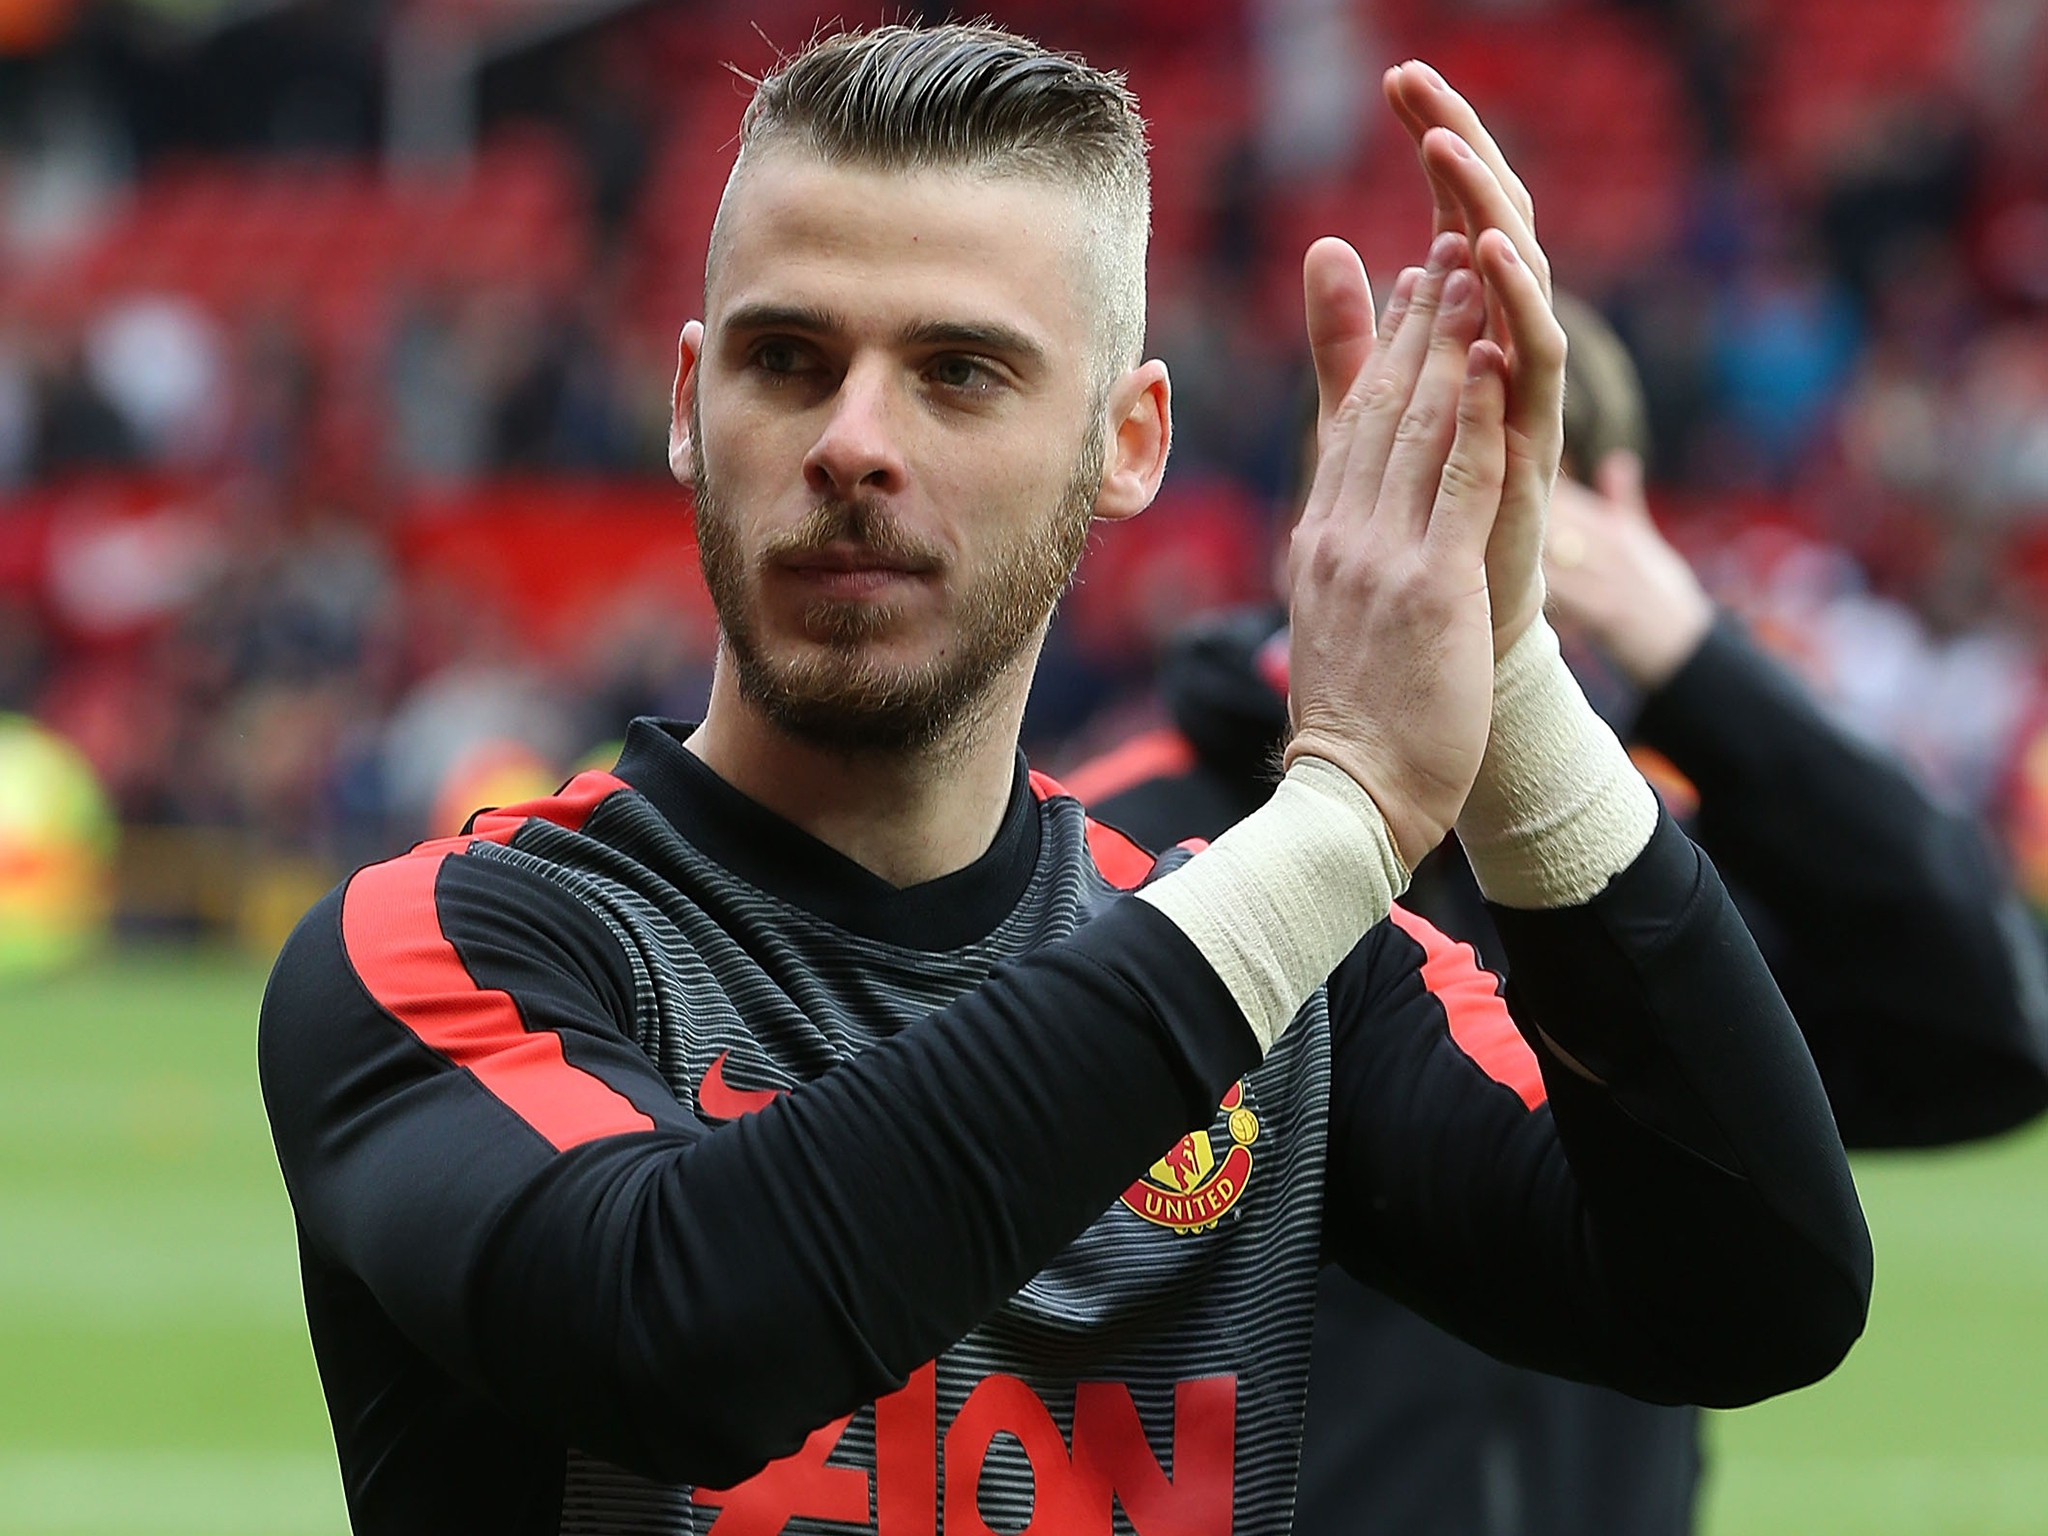 David De Gea Wallpapers Images Photos Pictures Backgrounds